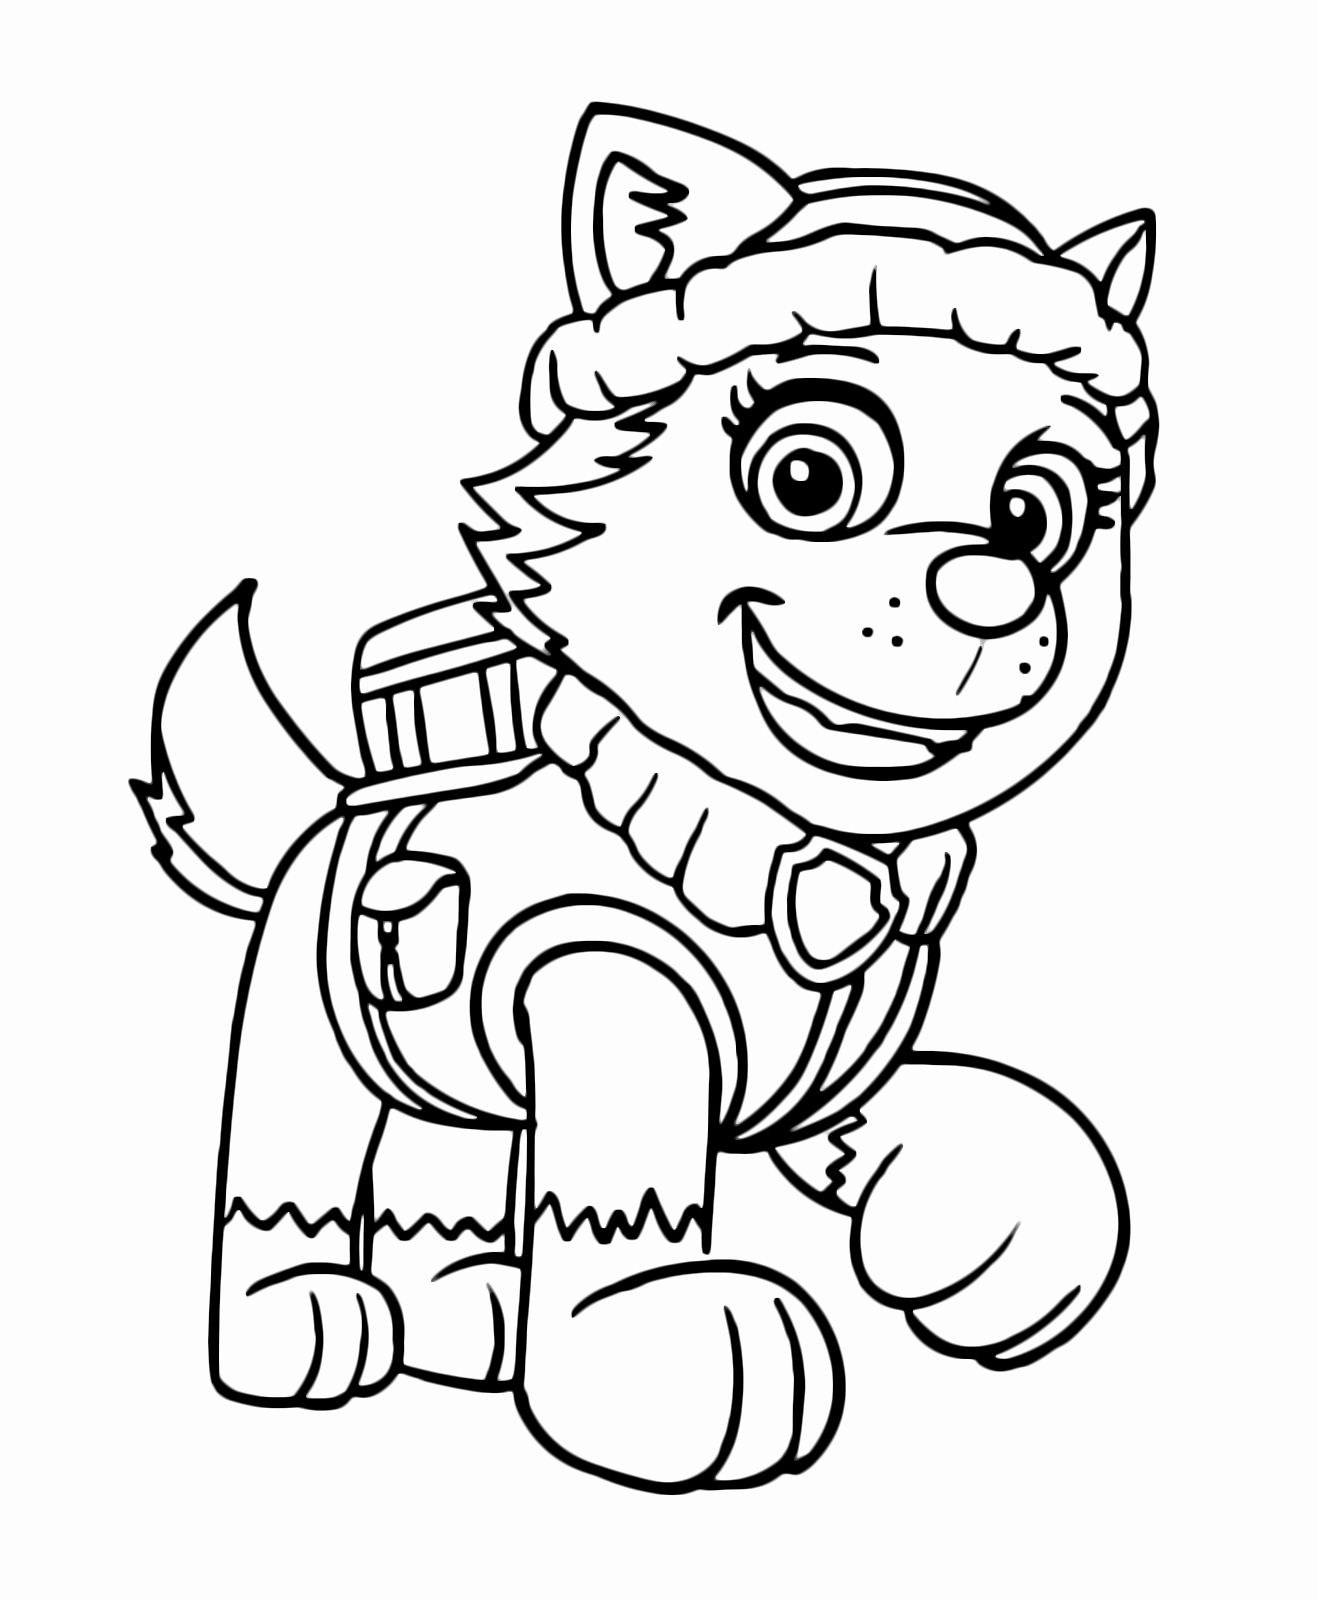 Paw Patrol Everest Coloring Page Beautiful Everest Paw Patrol